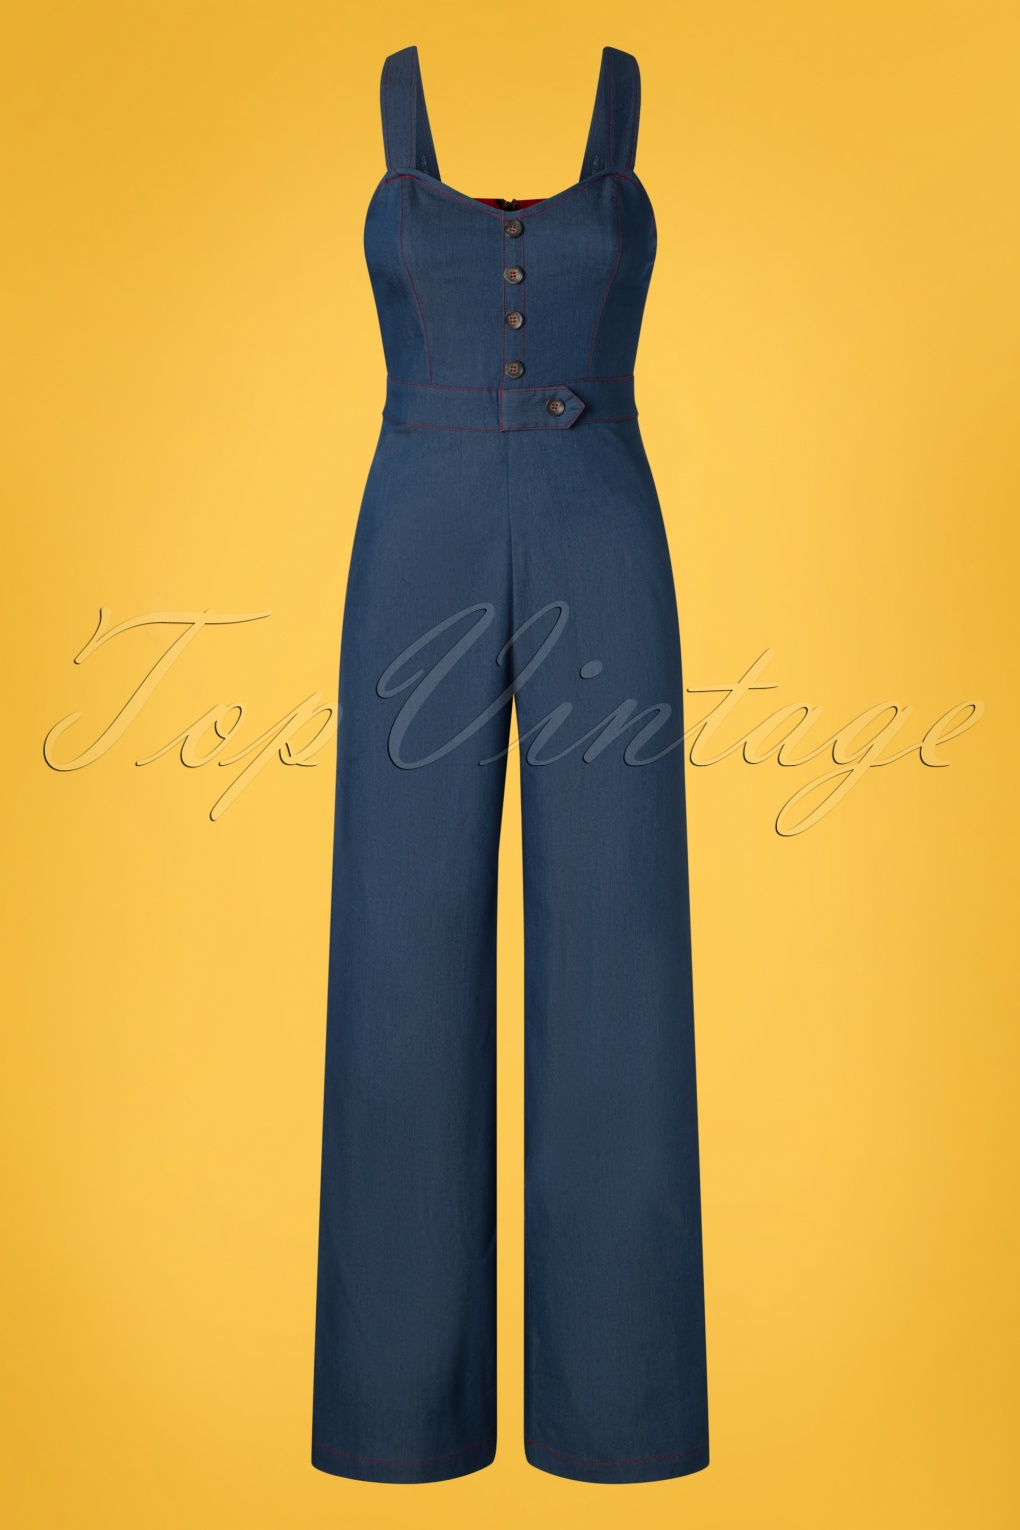 1950s Fashion History: Women's Clothing 50s Seaside Diner Chambray Jumpsuit in Denim Blue £52.68 AT vintagedancer.com